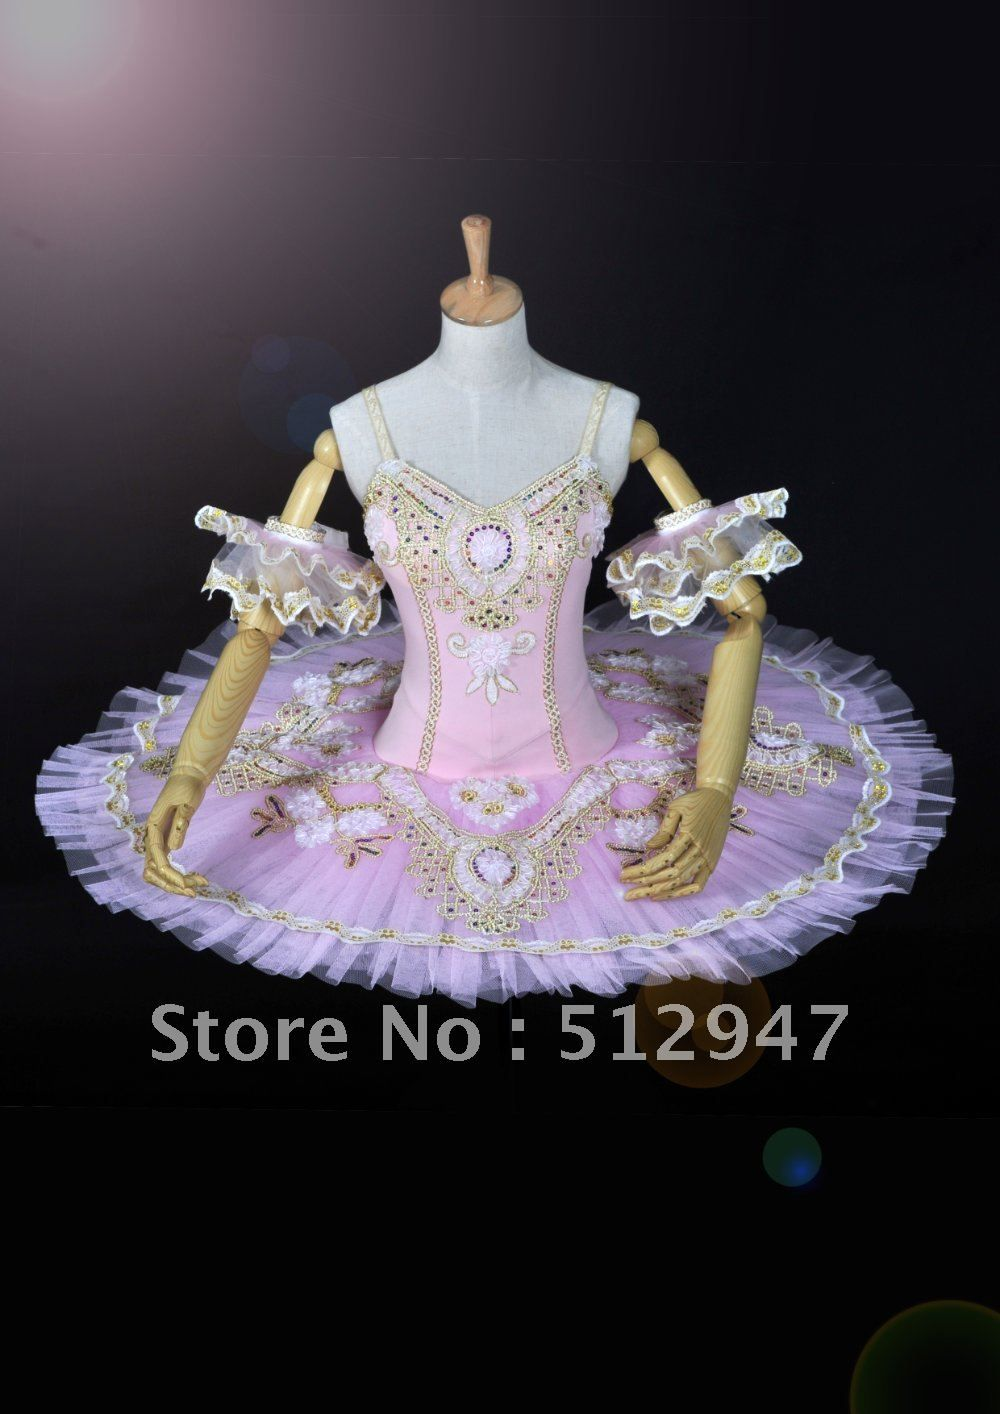 Child Professional  tutu dress/ adult professional ballet tutu costumes on AliExpress.com. $96.00